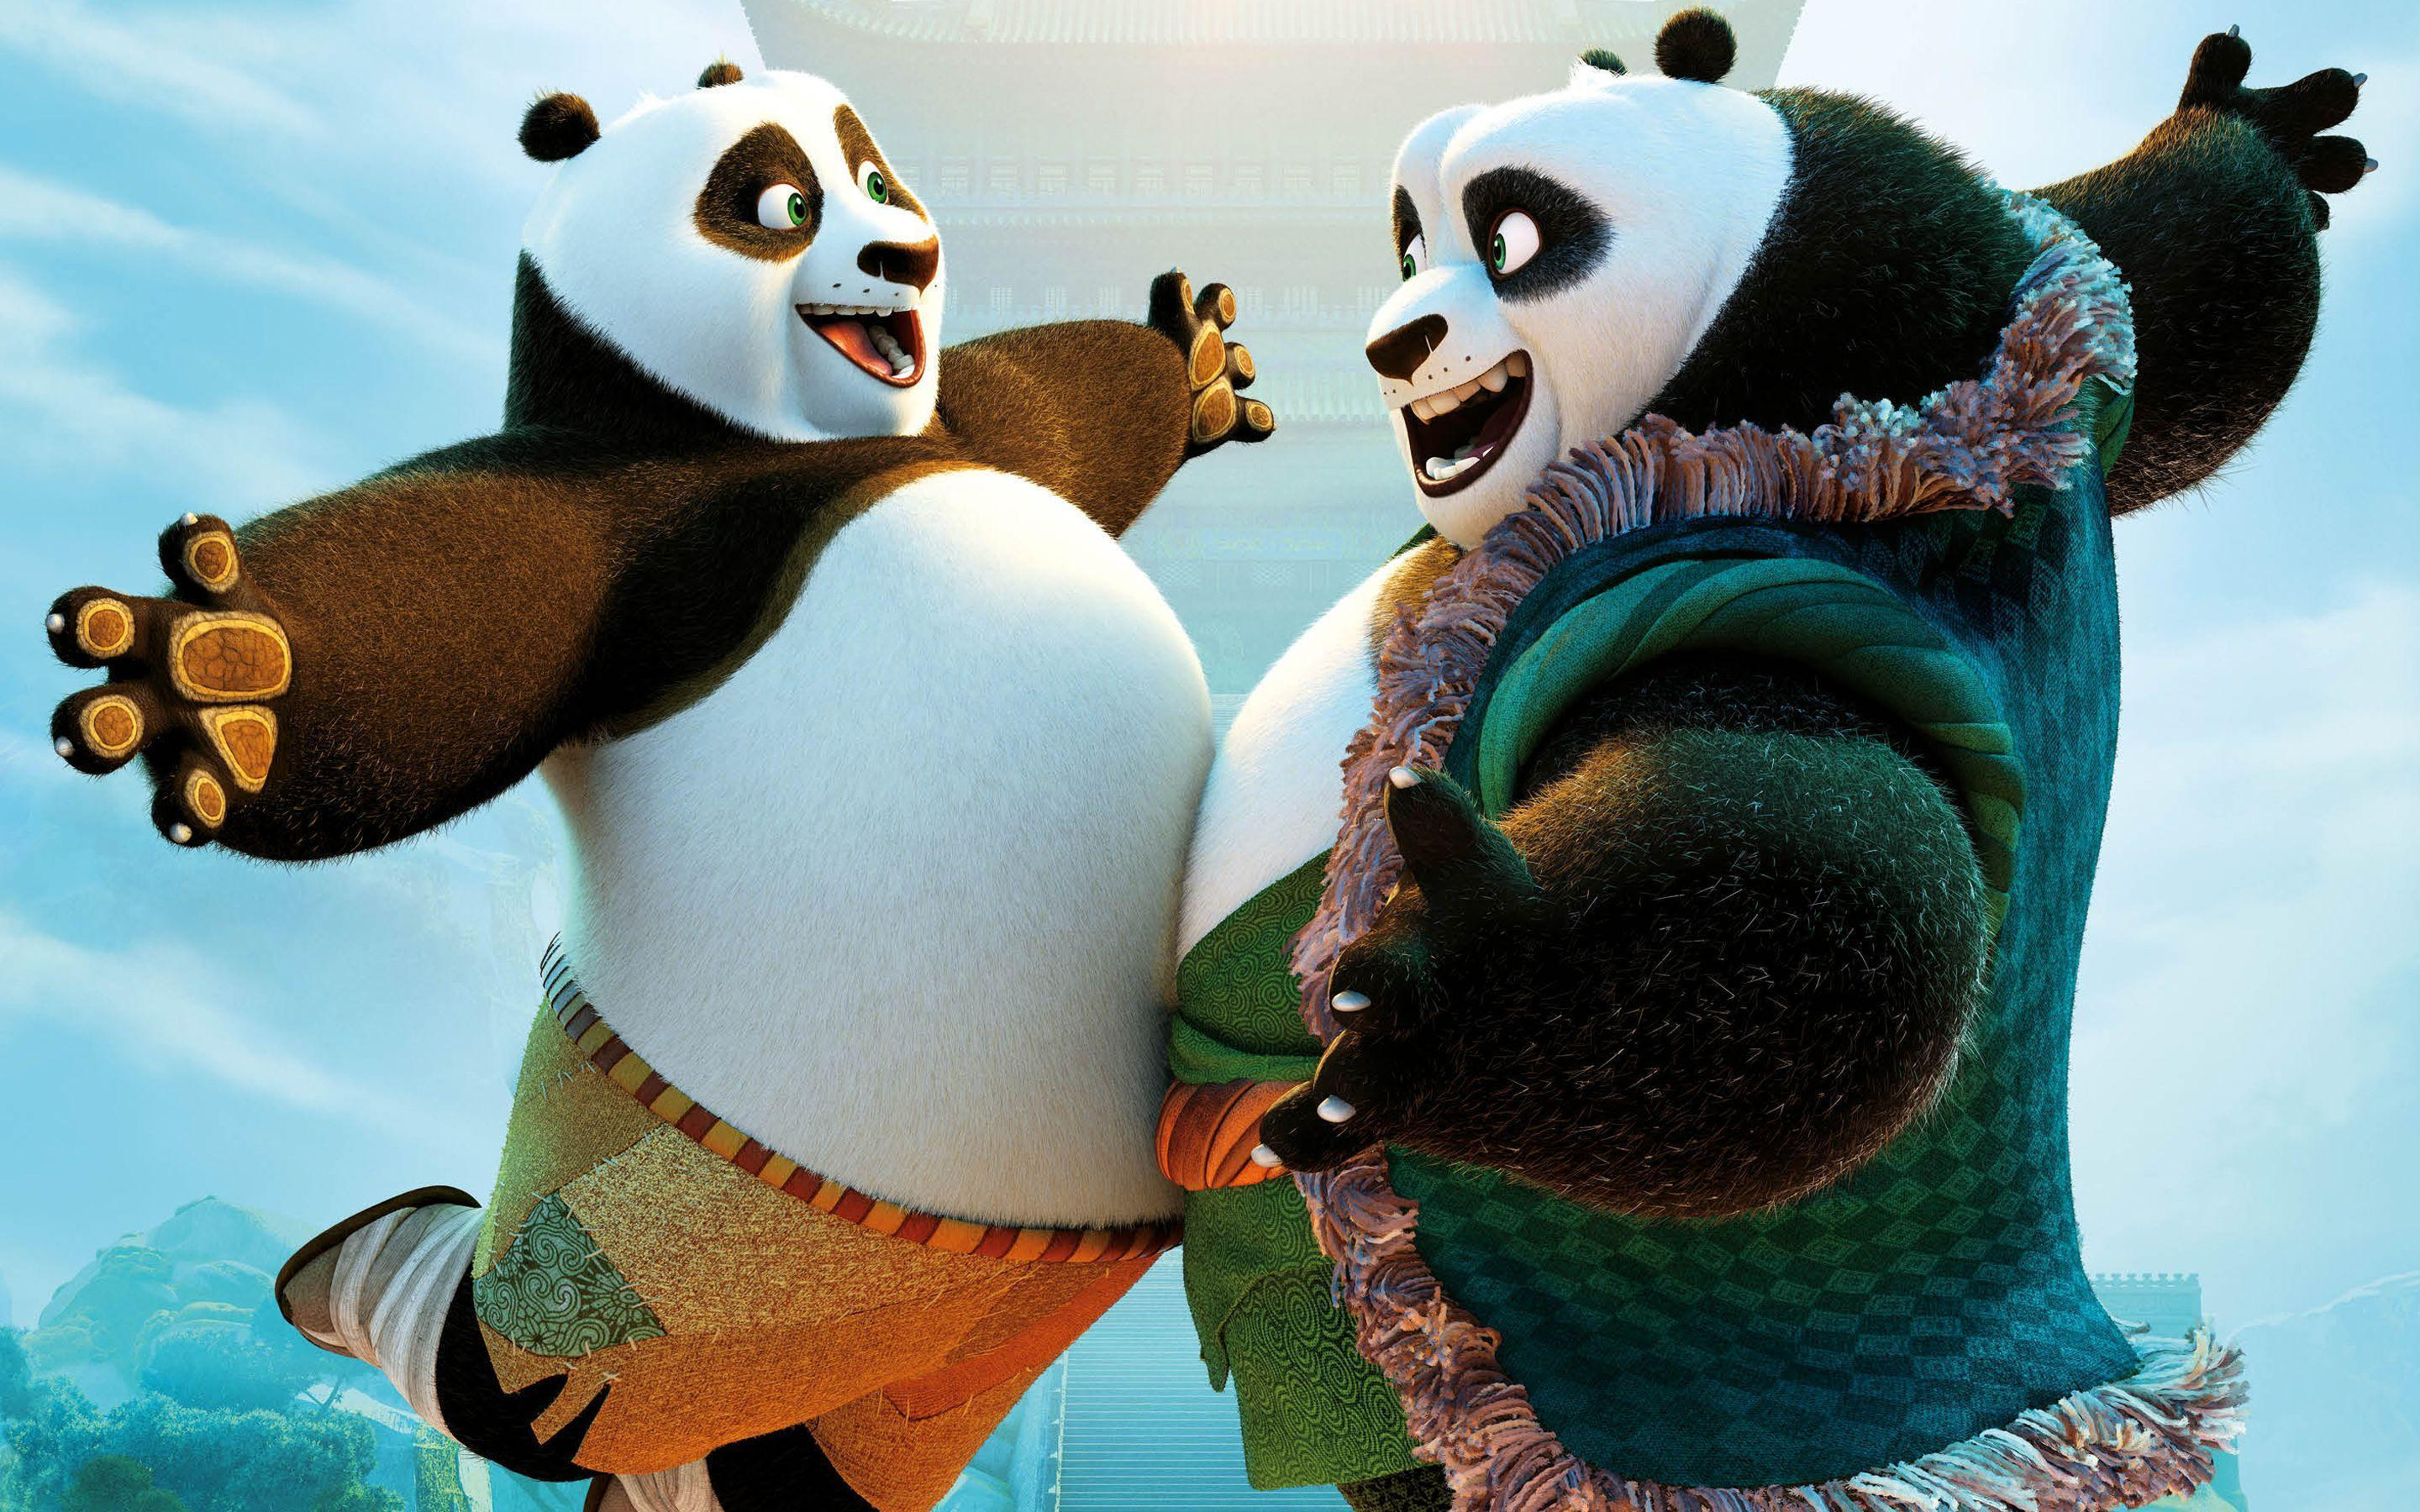 kung fu panda 3 wallpapers - wallpaper cave